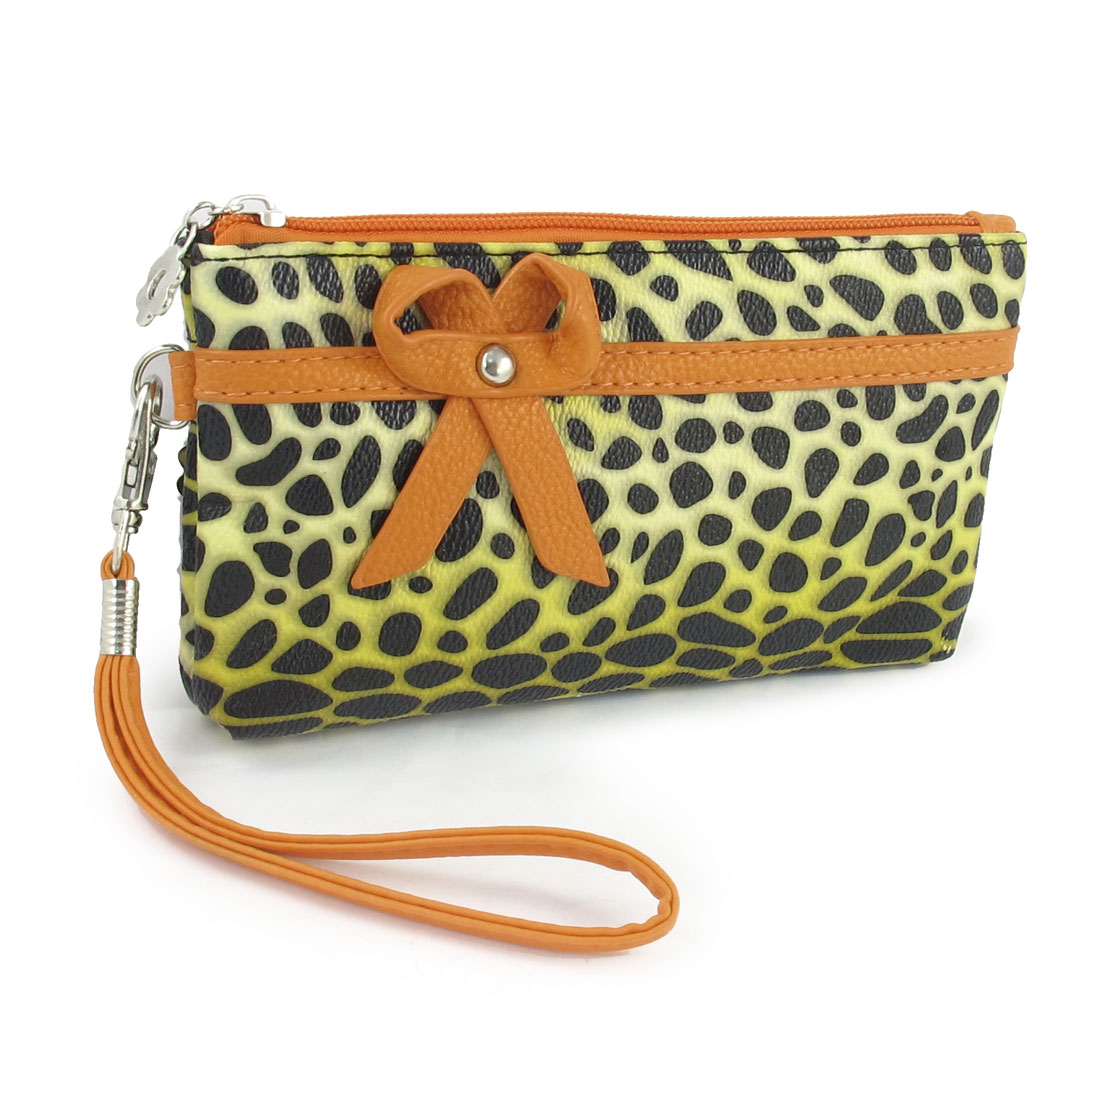 Lady Faux Leather Orange Bowknot Decor Leopard Print Zipper Rectangle Bag Purse